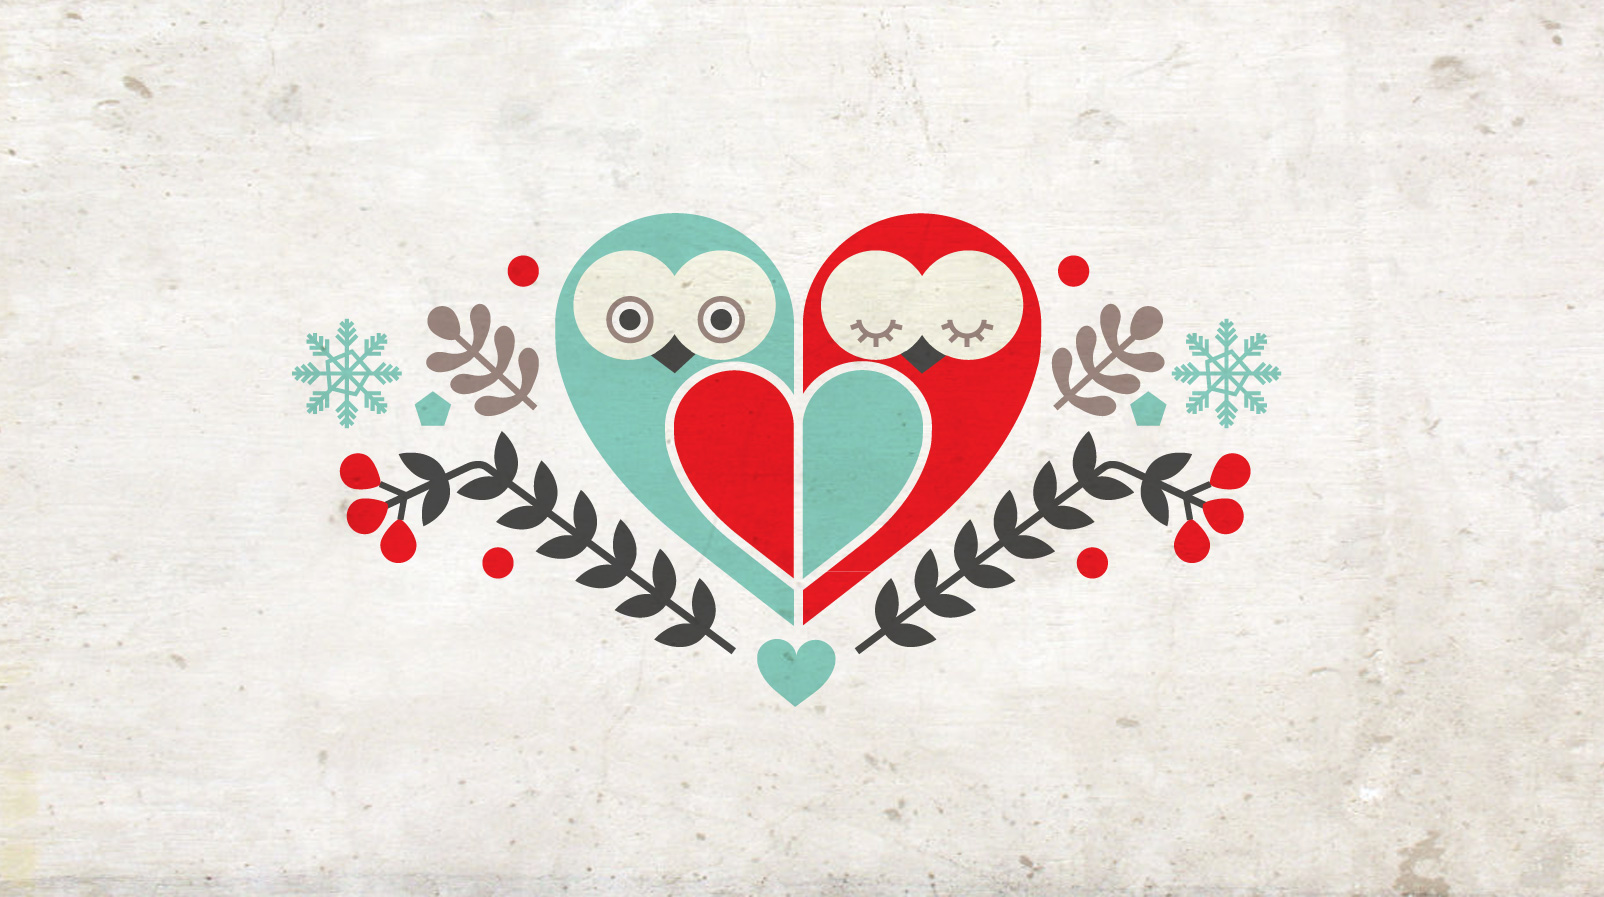 december-desktop-illustration-love-owls-holidays-winter